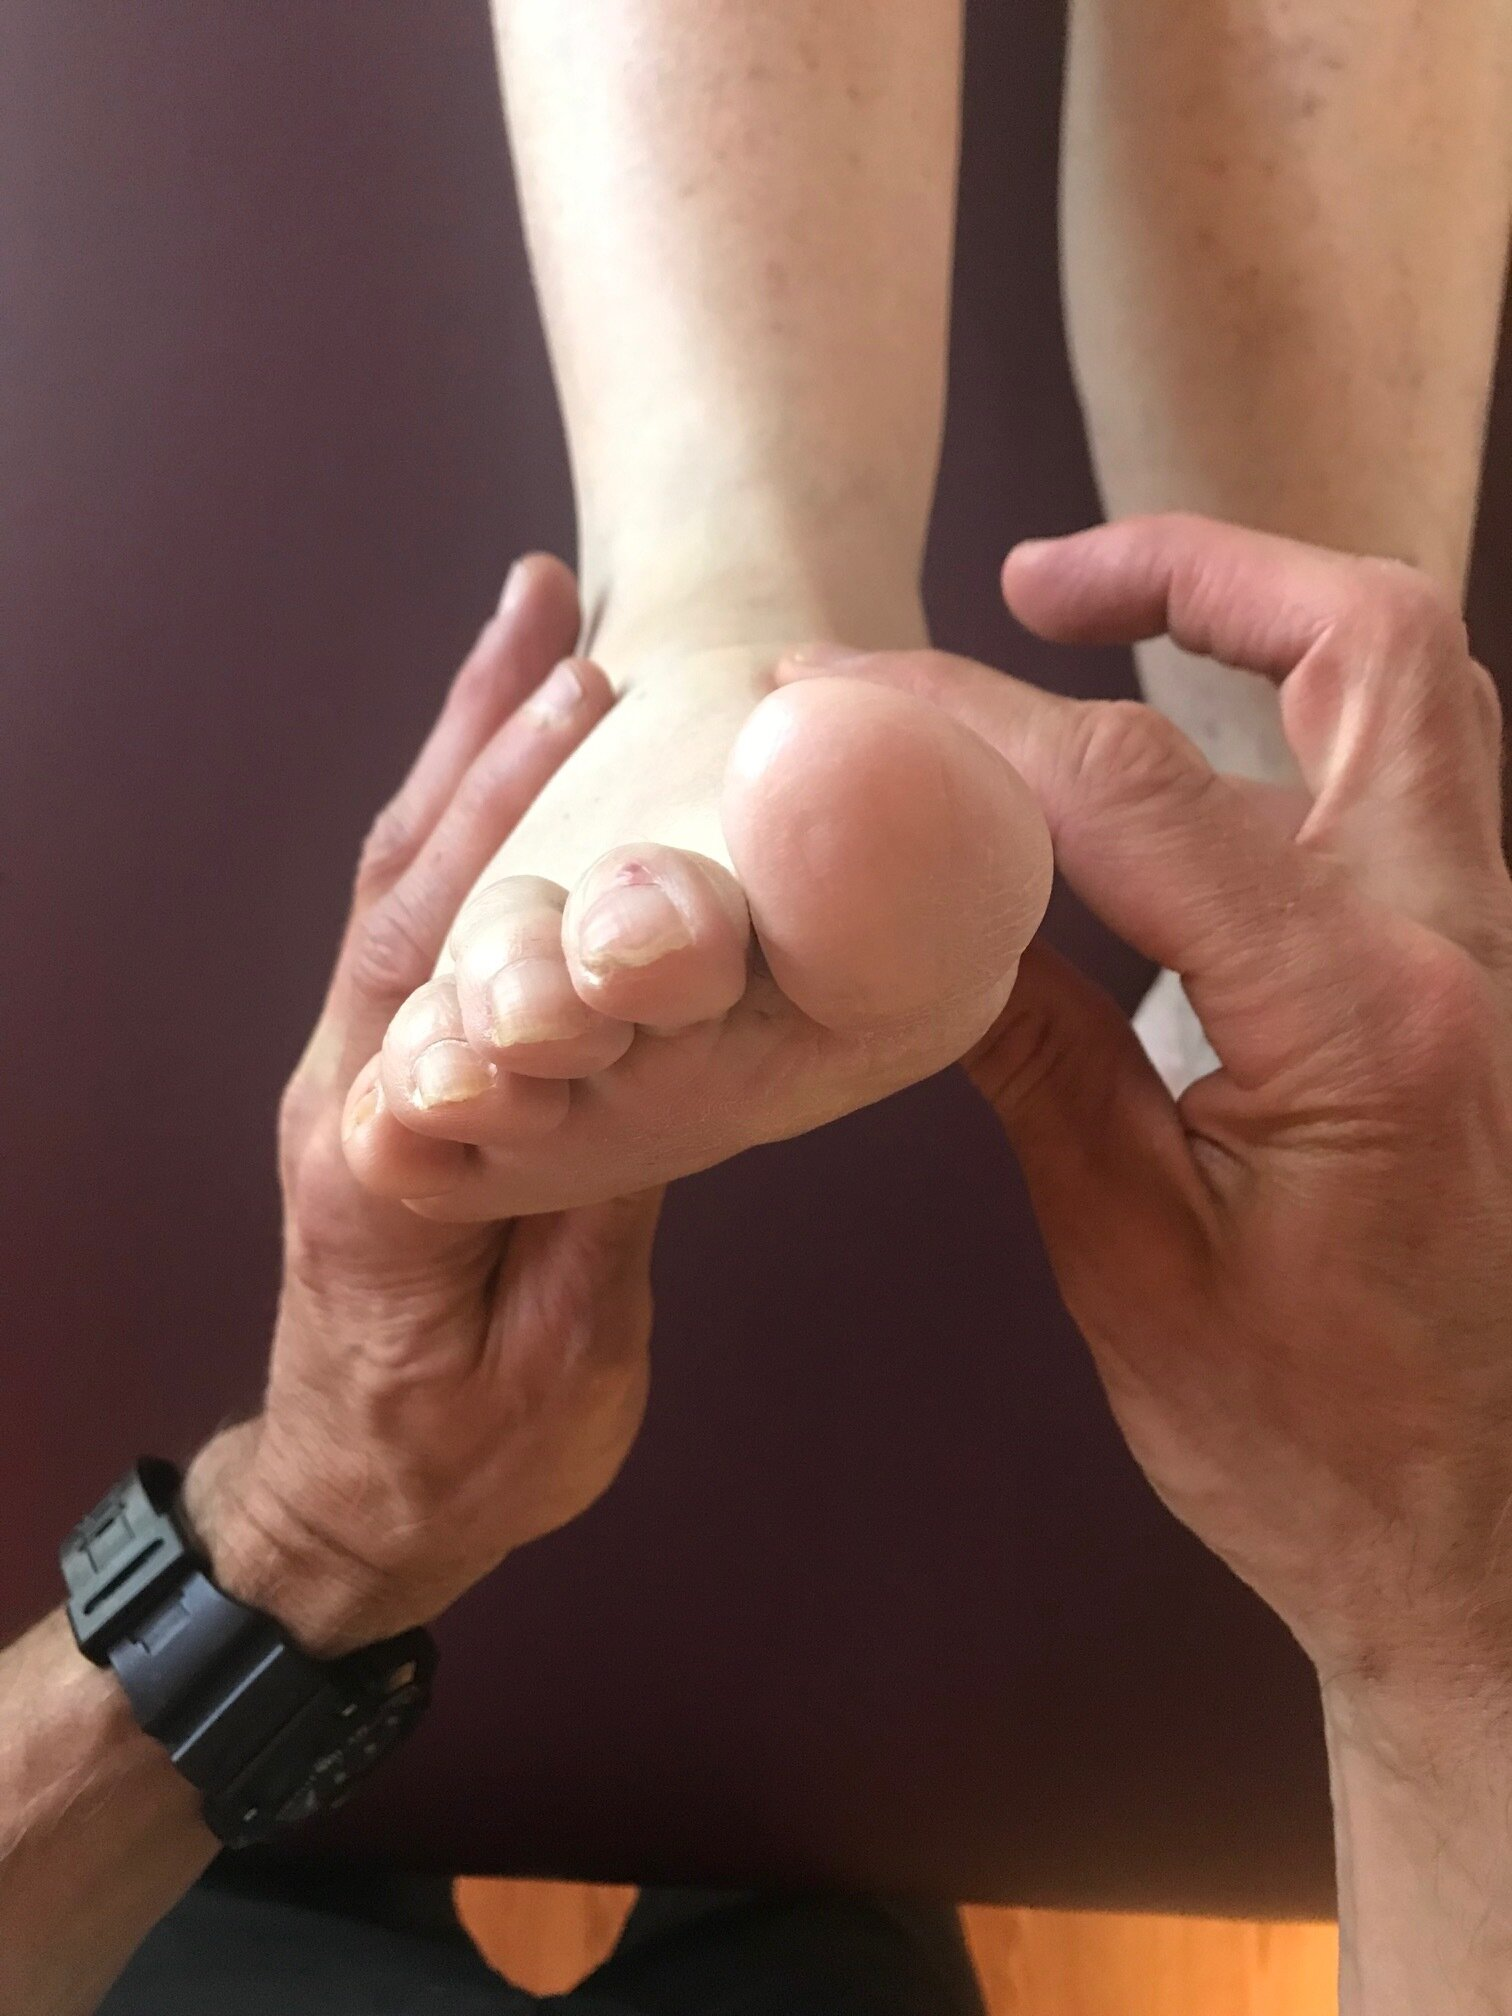 forefoot varus: note how the forefoot is inverted with respect to the rear foot